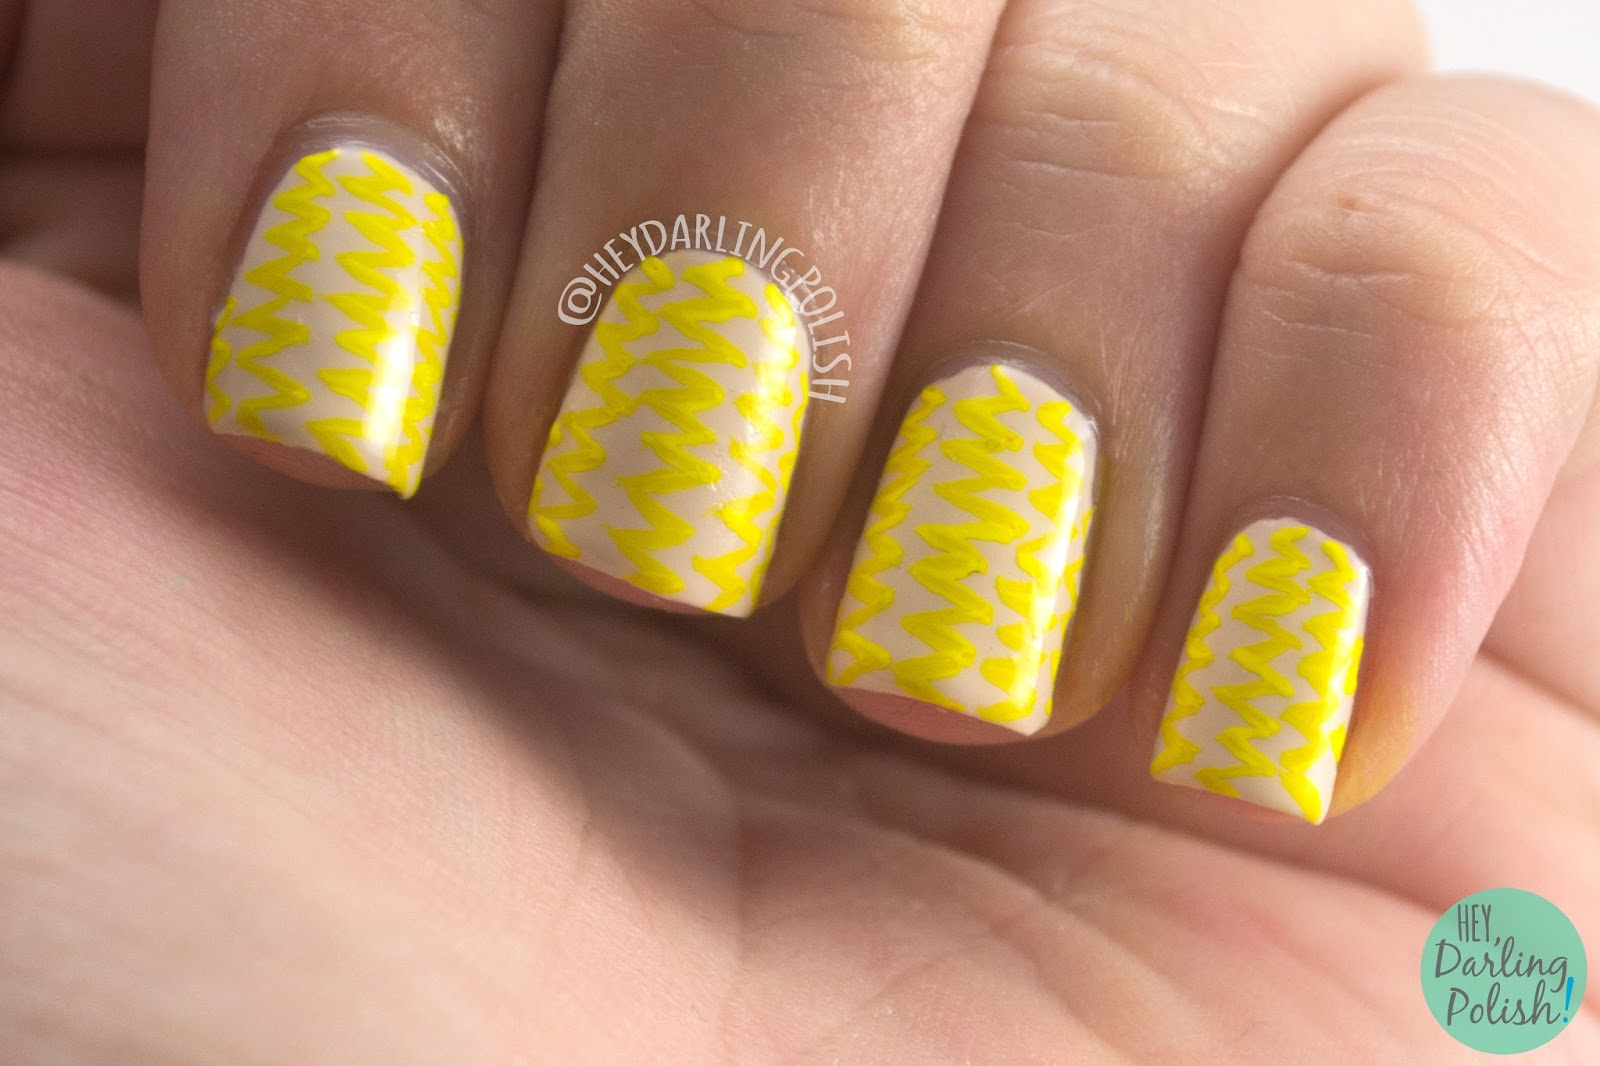 nails, nail art, nail polish, yellow, zig zags, pattern, hey darling polish, 31dc2014, 31 day challenge